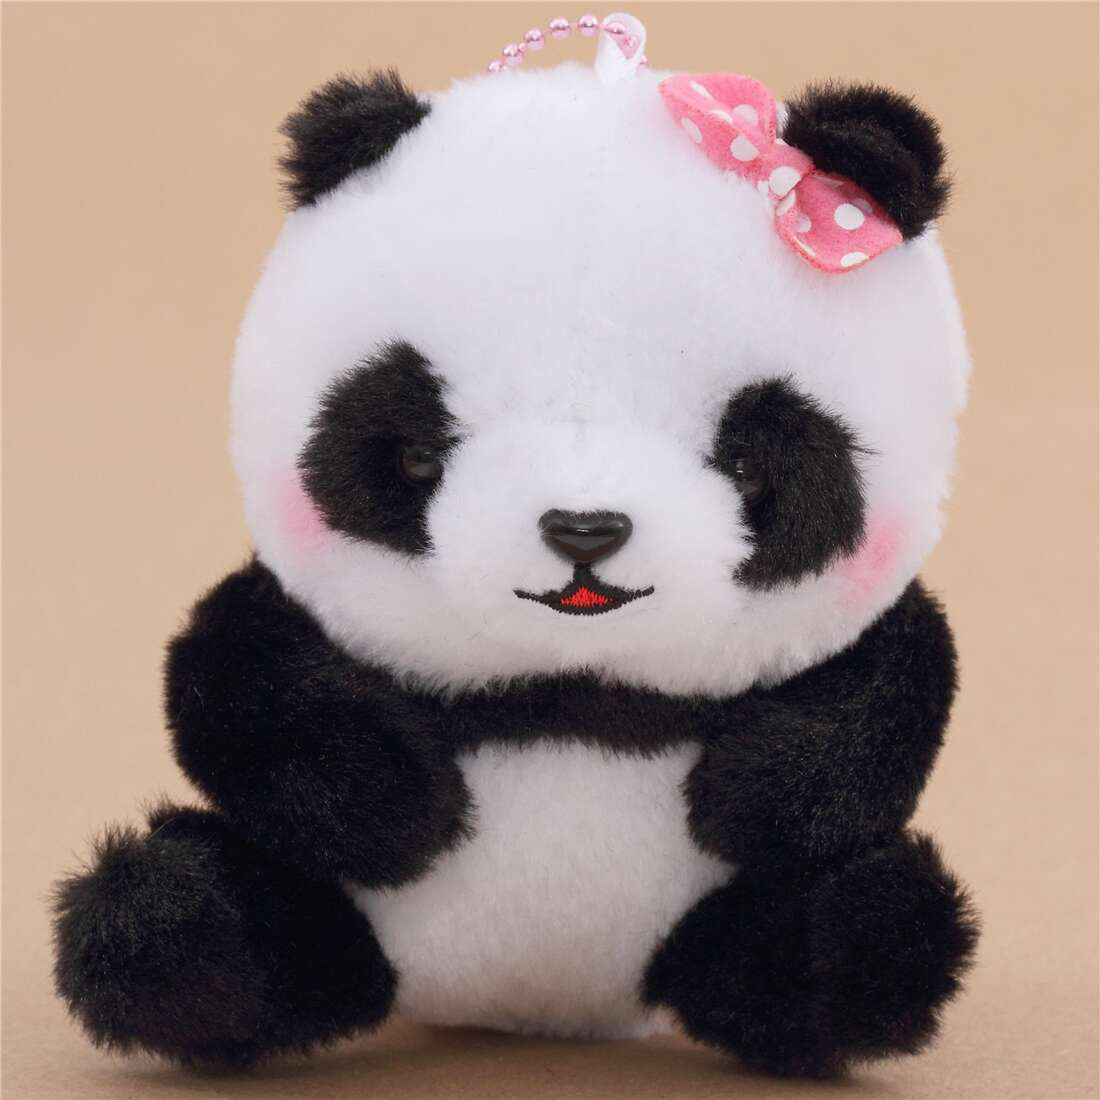 Small Black White Panda With Pink Bow With Chain Squeaky Plush Toy